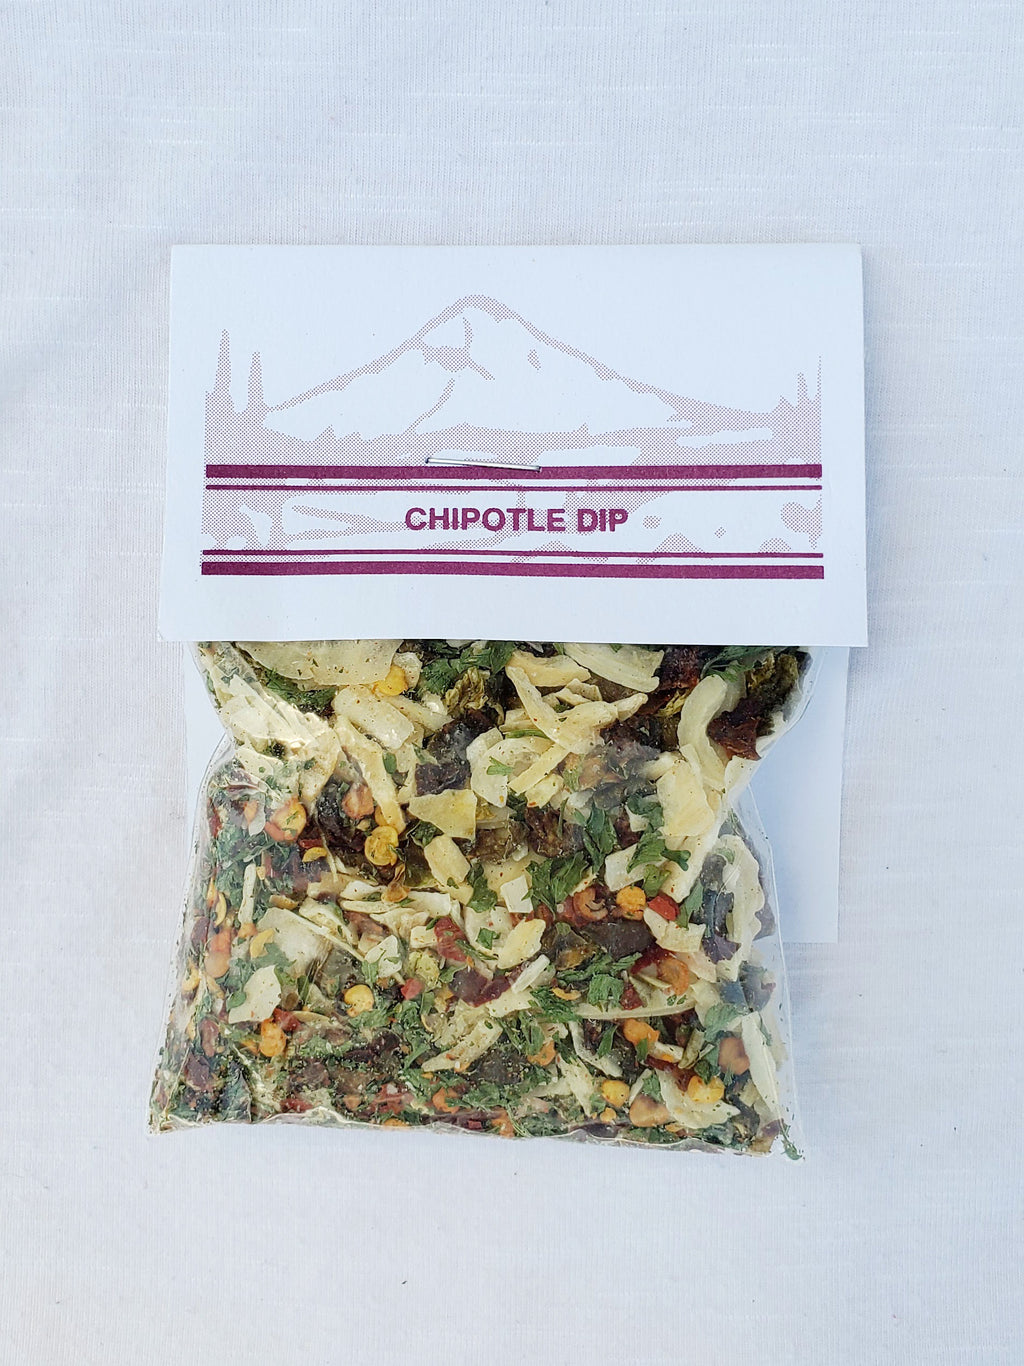 Northwest Spices Chipotle Spice Blend and Dip Mix